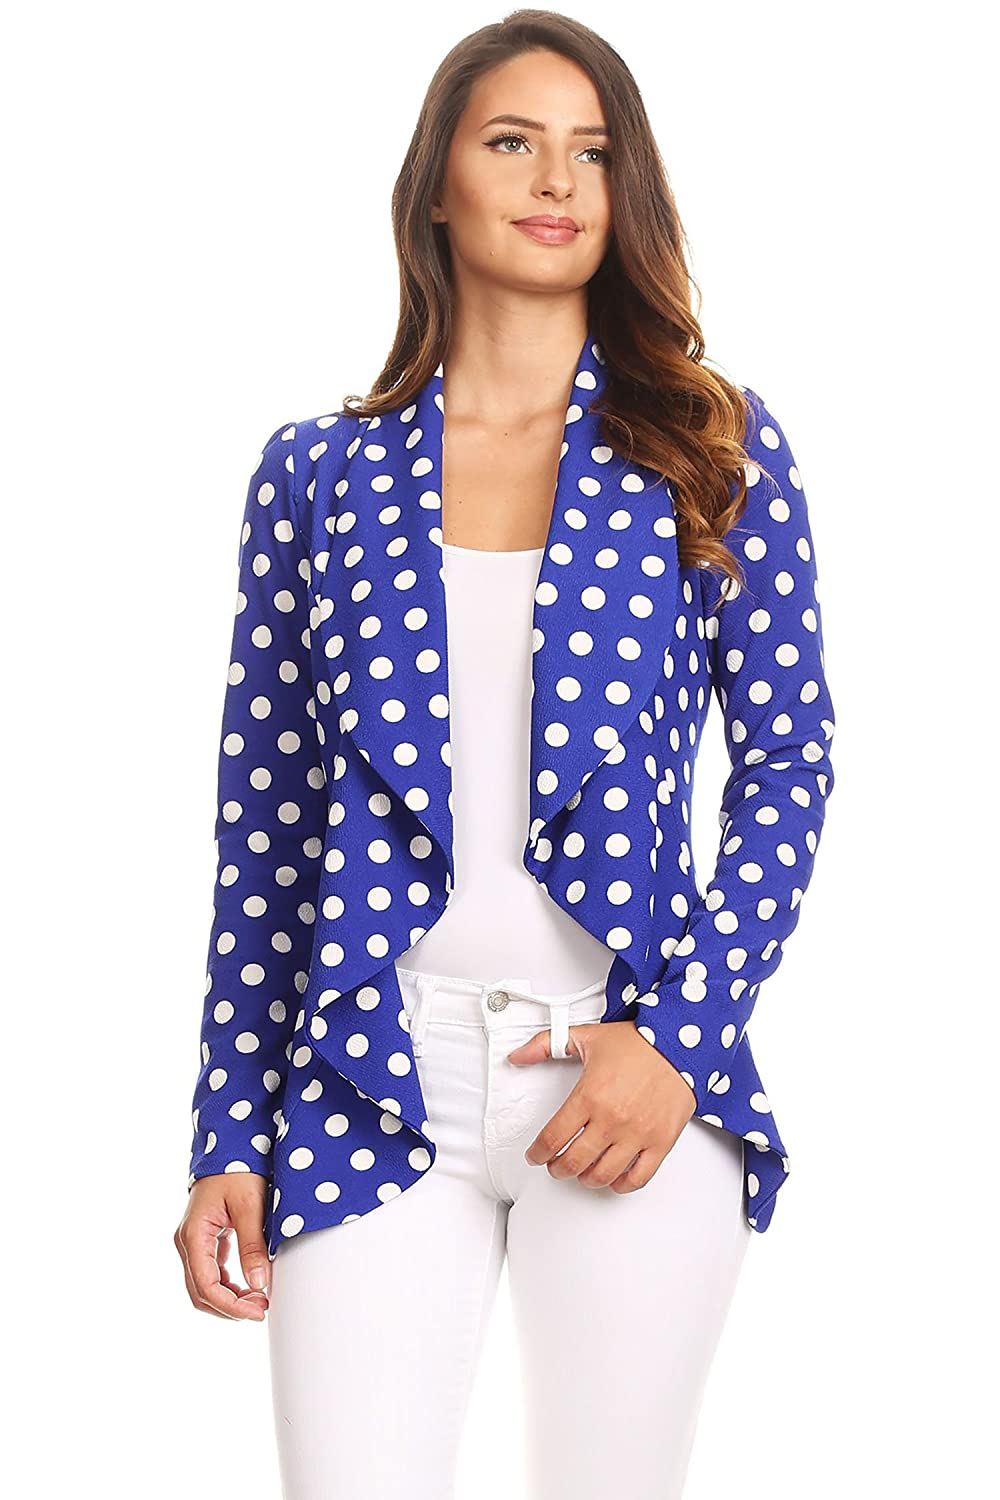 Instar Mode Women's Solid Formal Style Open Front Long Sleeves Blazer - Made in USA